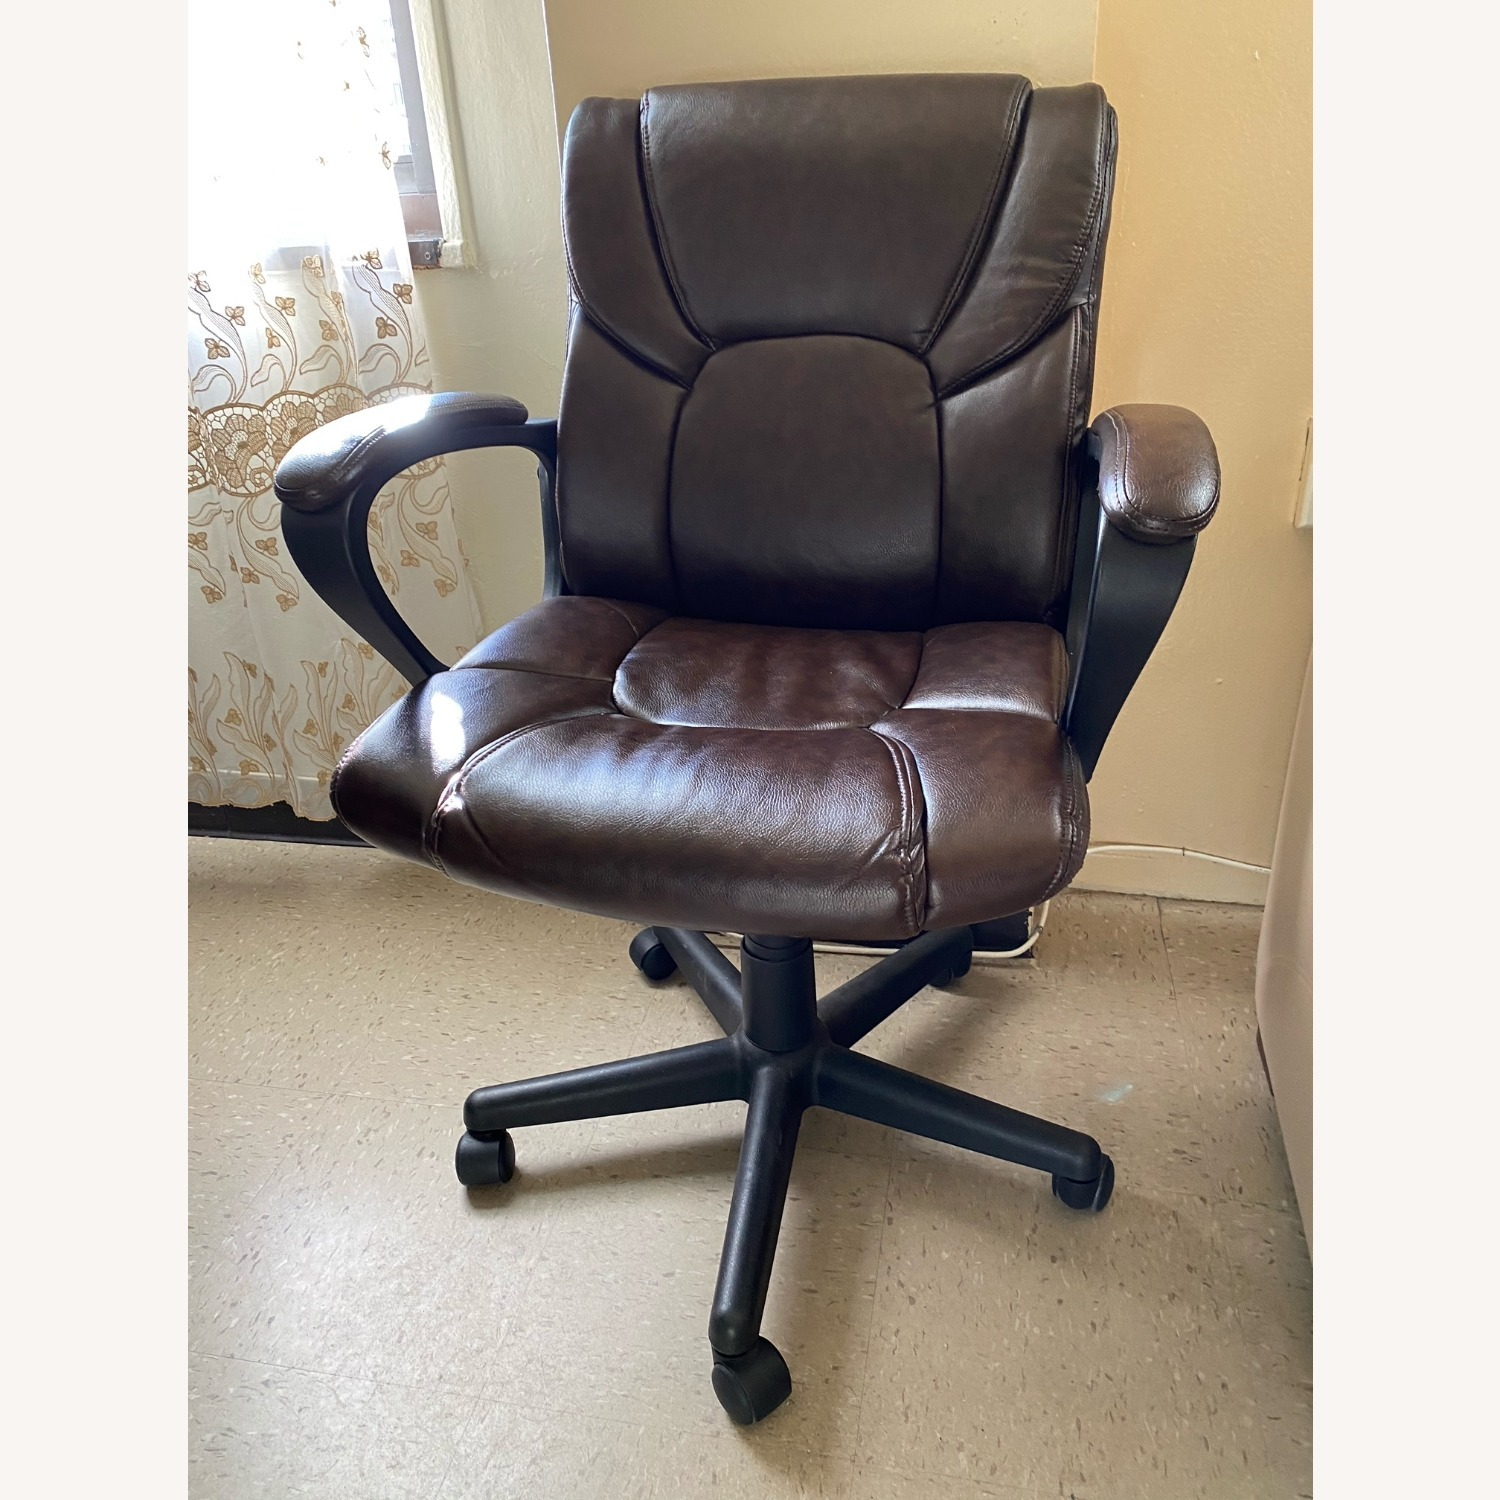 Staples Office Armchair on Wheels - image-0